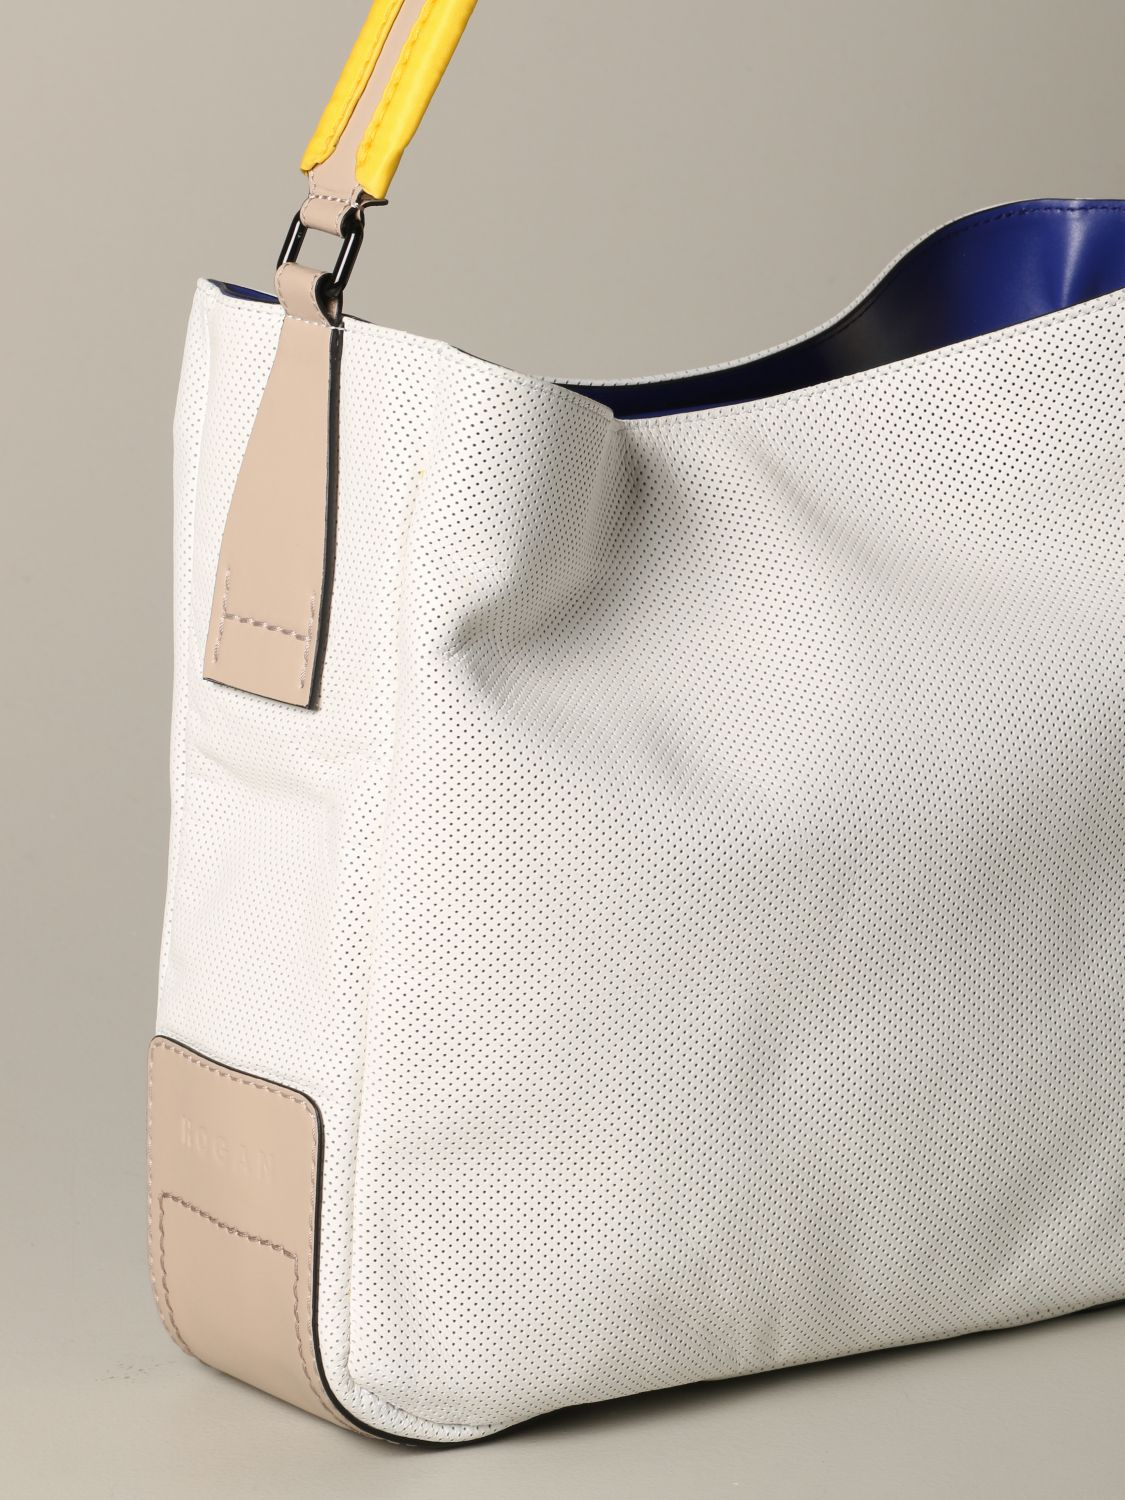 Hogan shoulder bag in micro-dots leather white 3